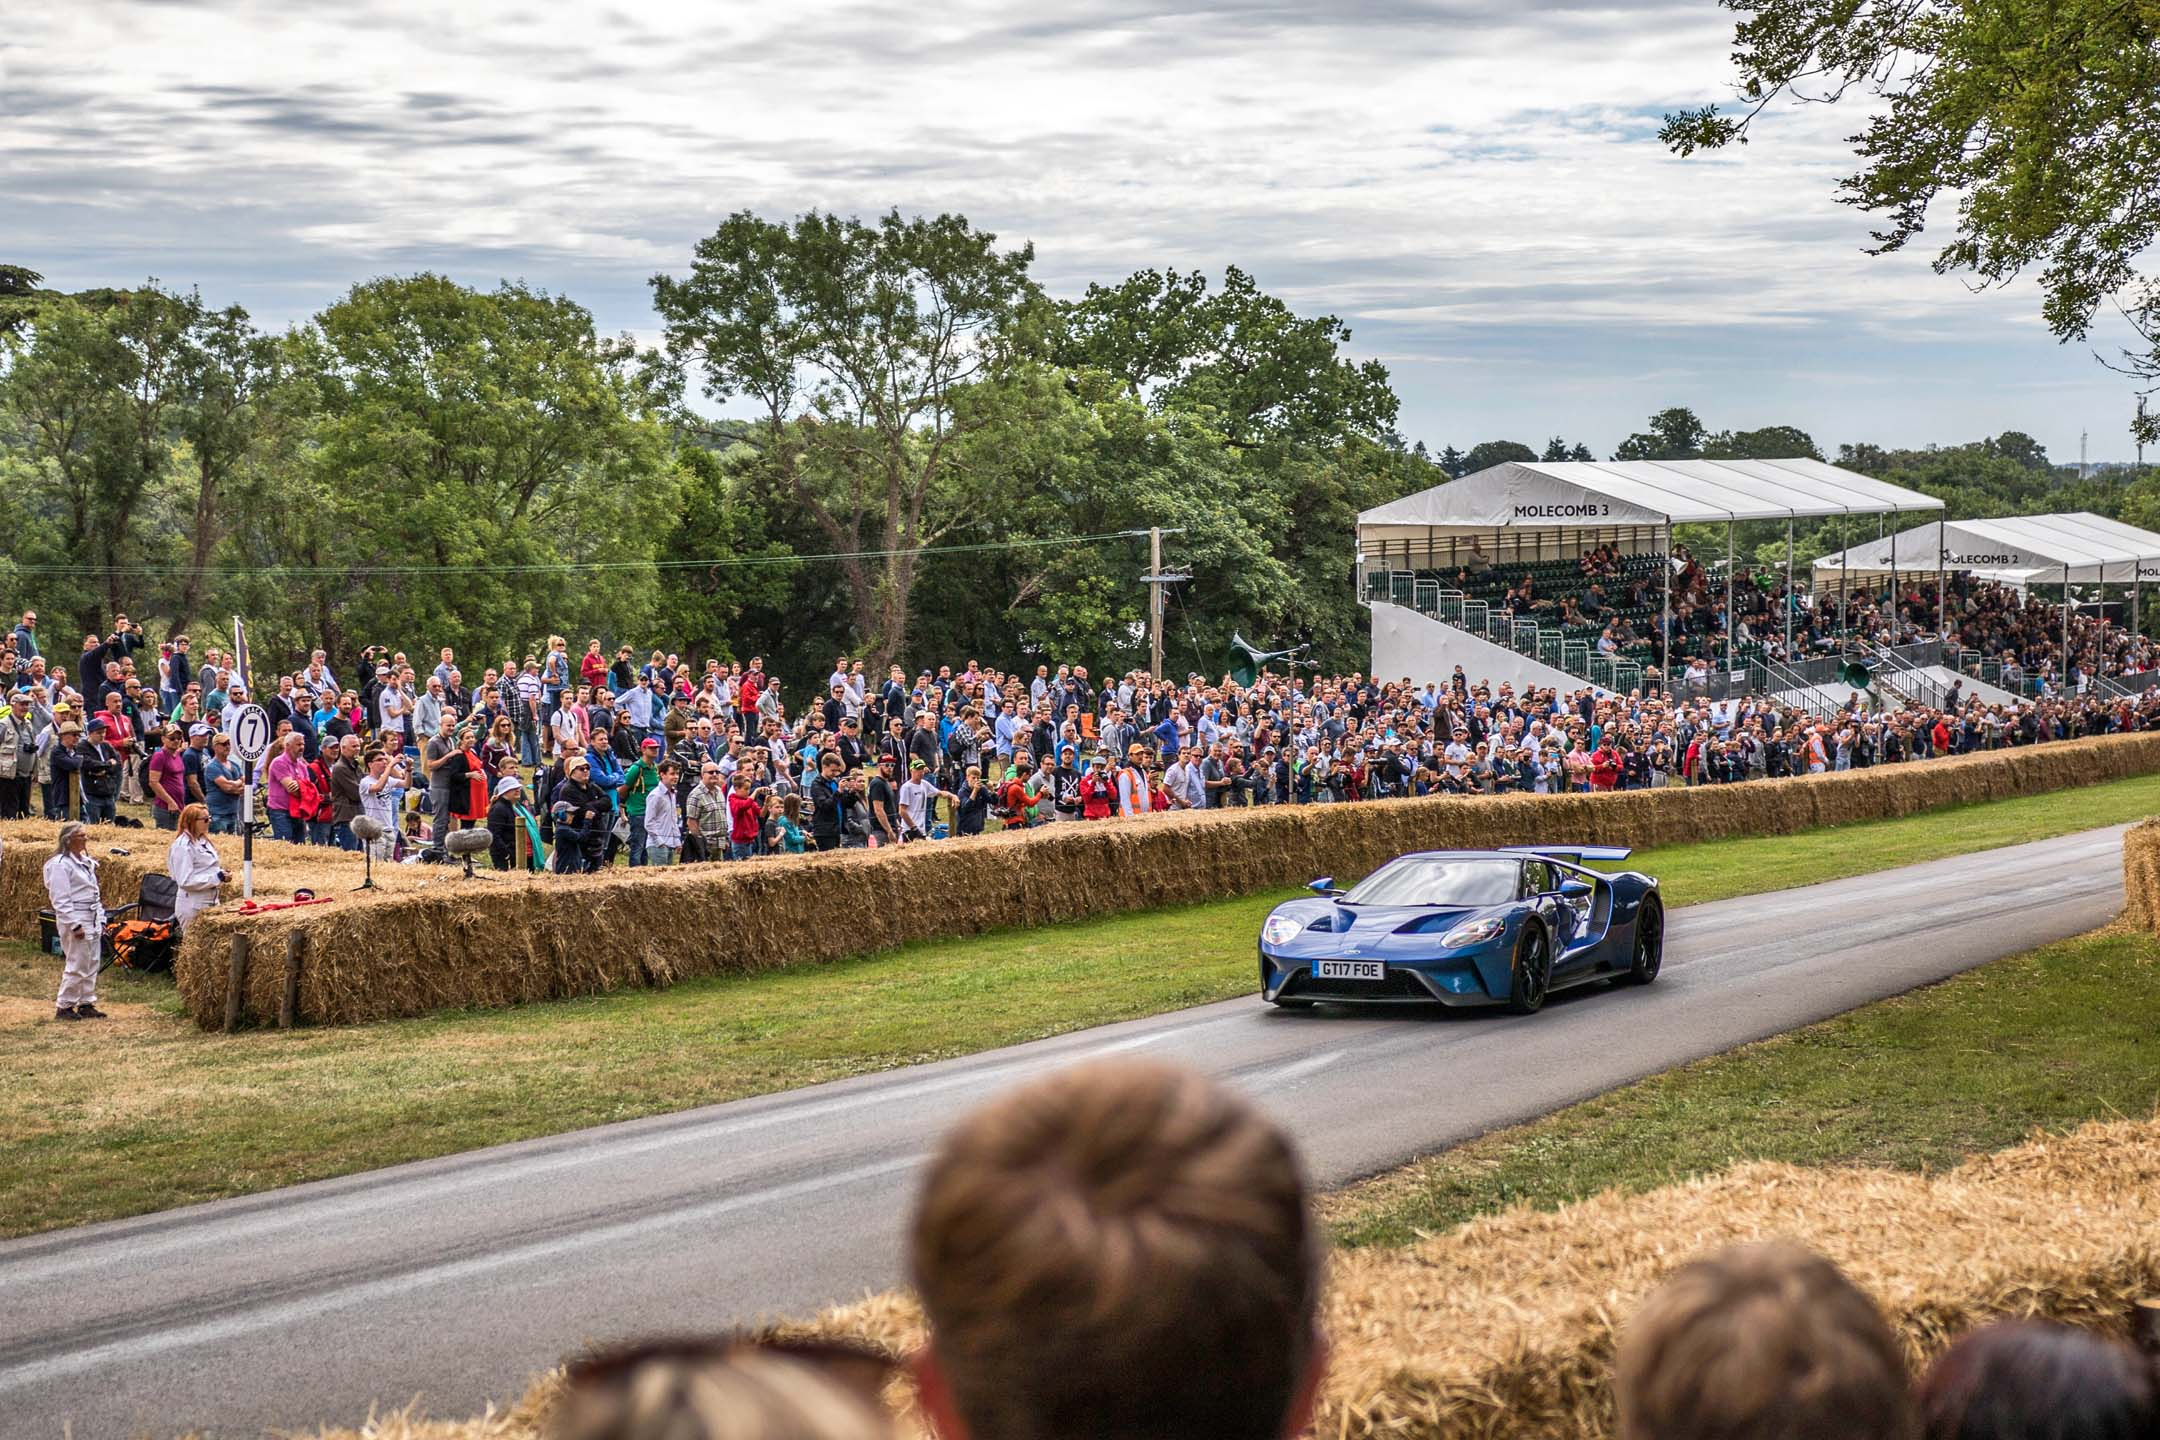 Along with all the historic stuff, a new challenger appears. The Ford GT attracted plenty of crowds in the paddock, and practically flew up the hill. Not too many onlookers seemed to know it was built in Canada.